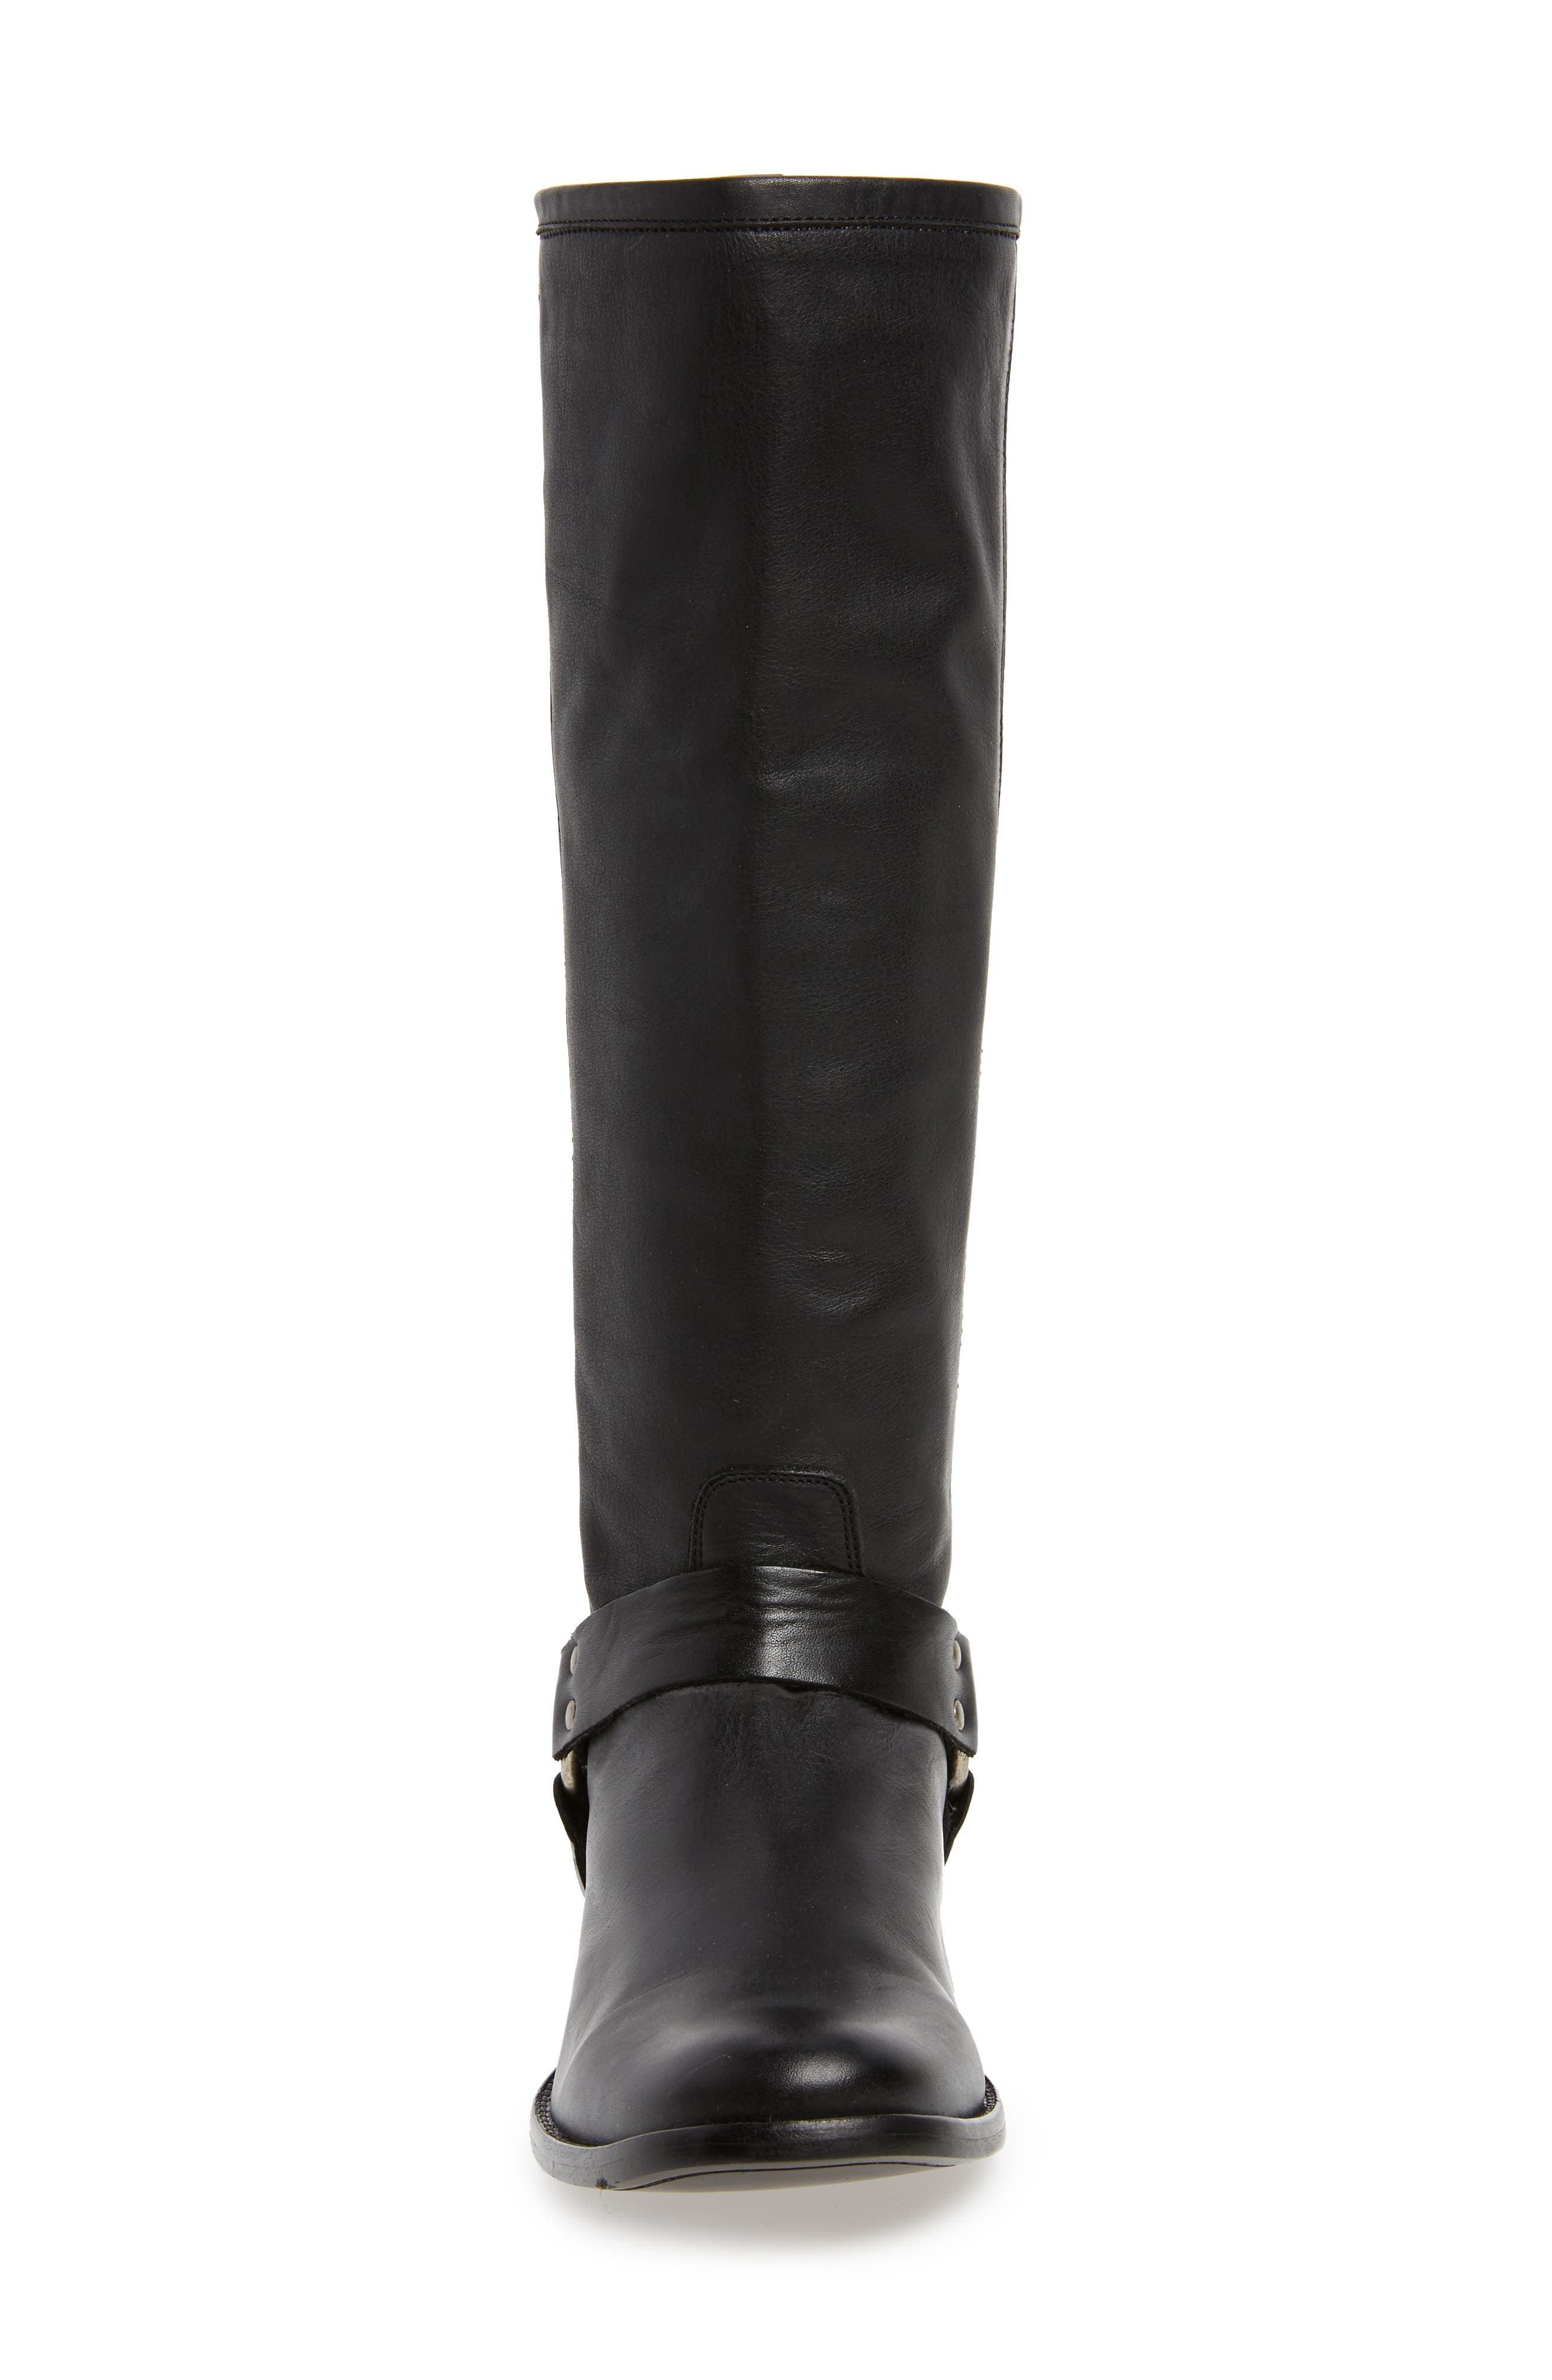 Phillip Harness Tall Boot,                             Alternate thumbnail 4, color,                             Black Leather